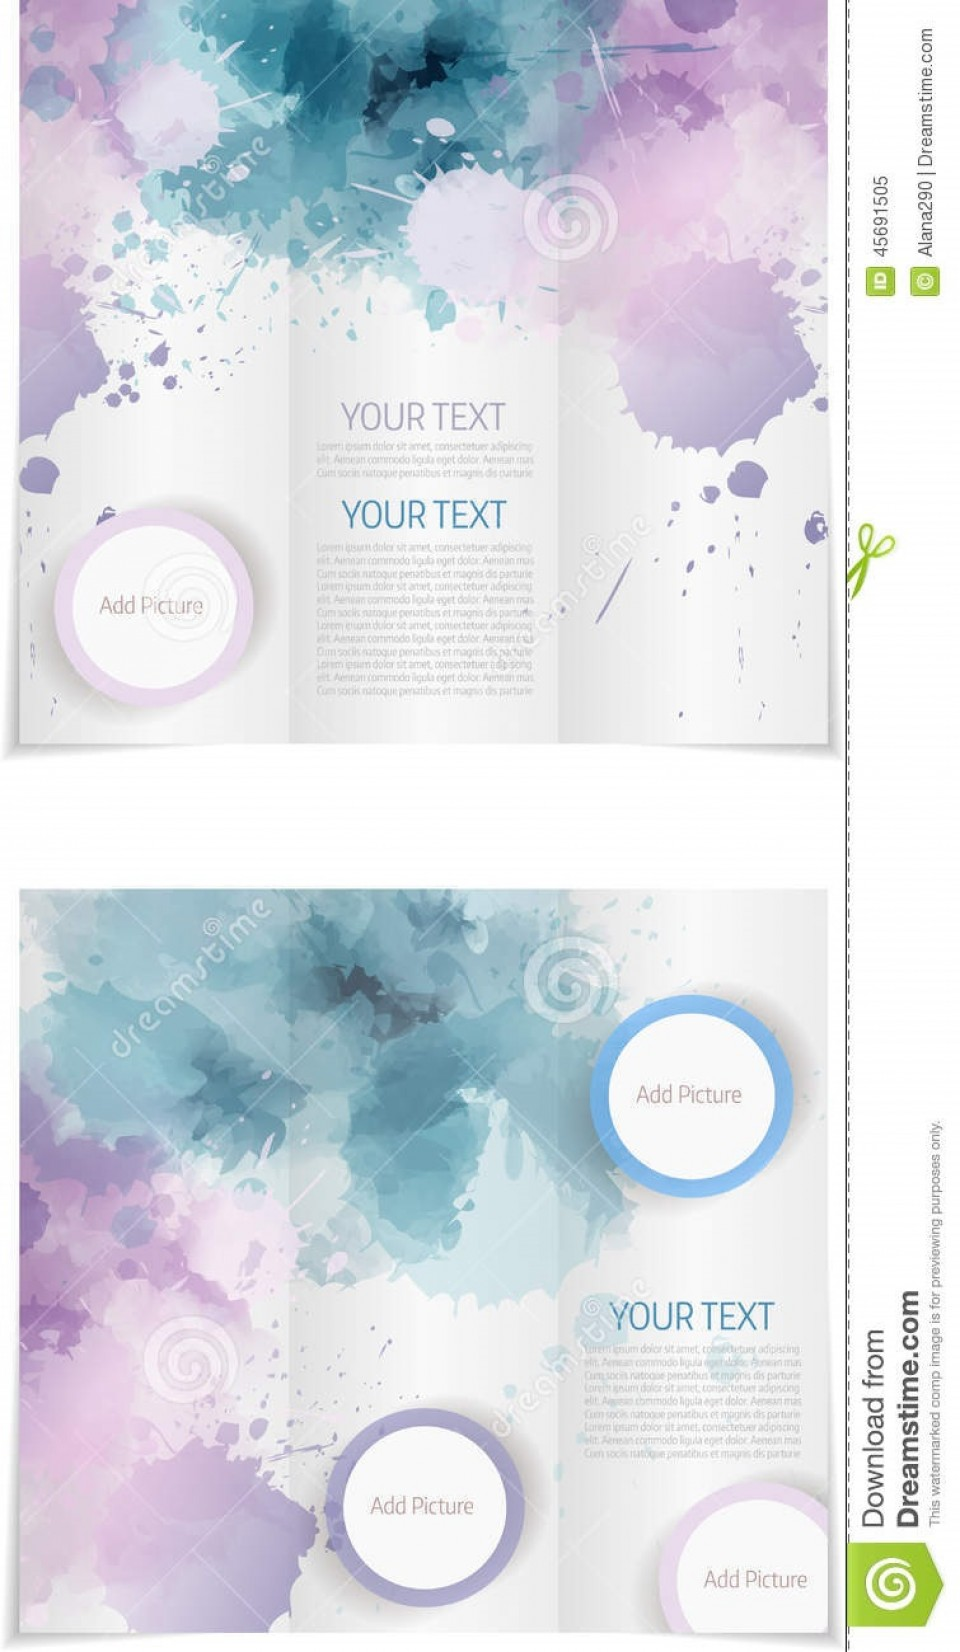 009 Stupendou Publisher Brochure Template Free Inspiration  Tri Fold Microsoft Download Bi960